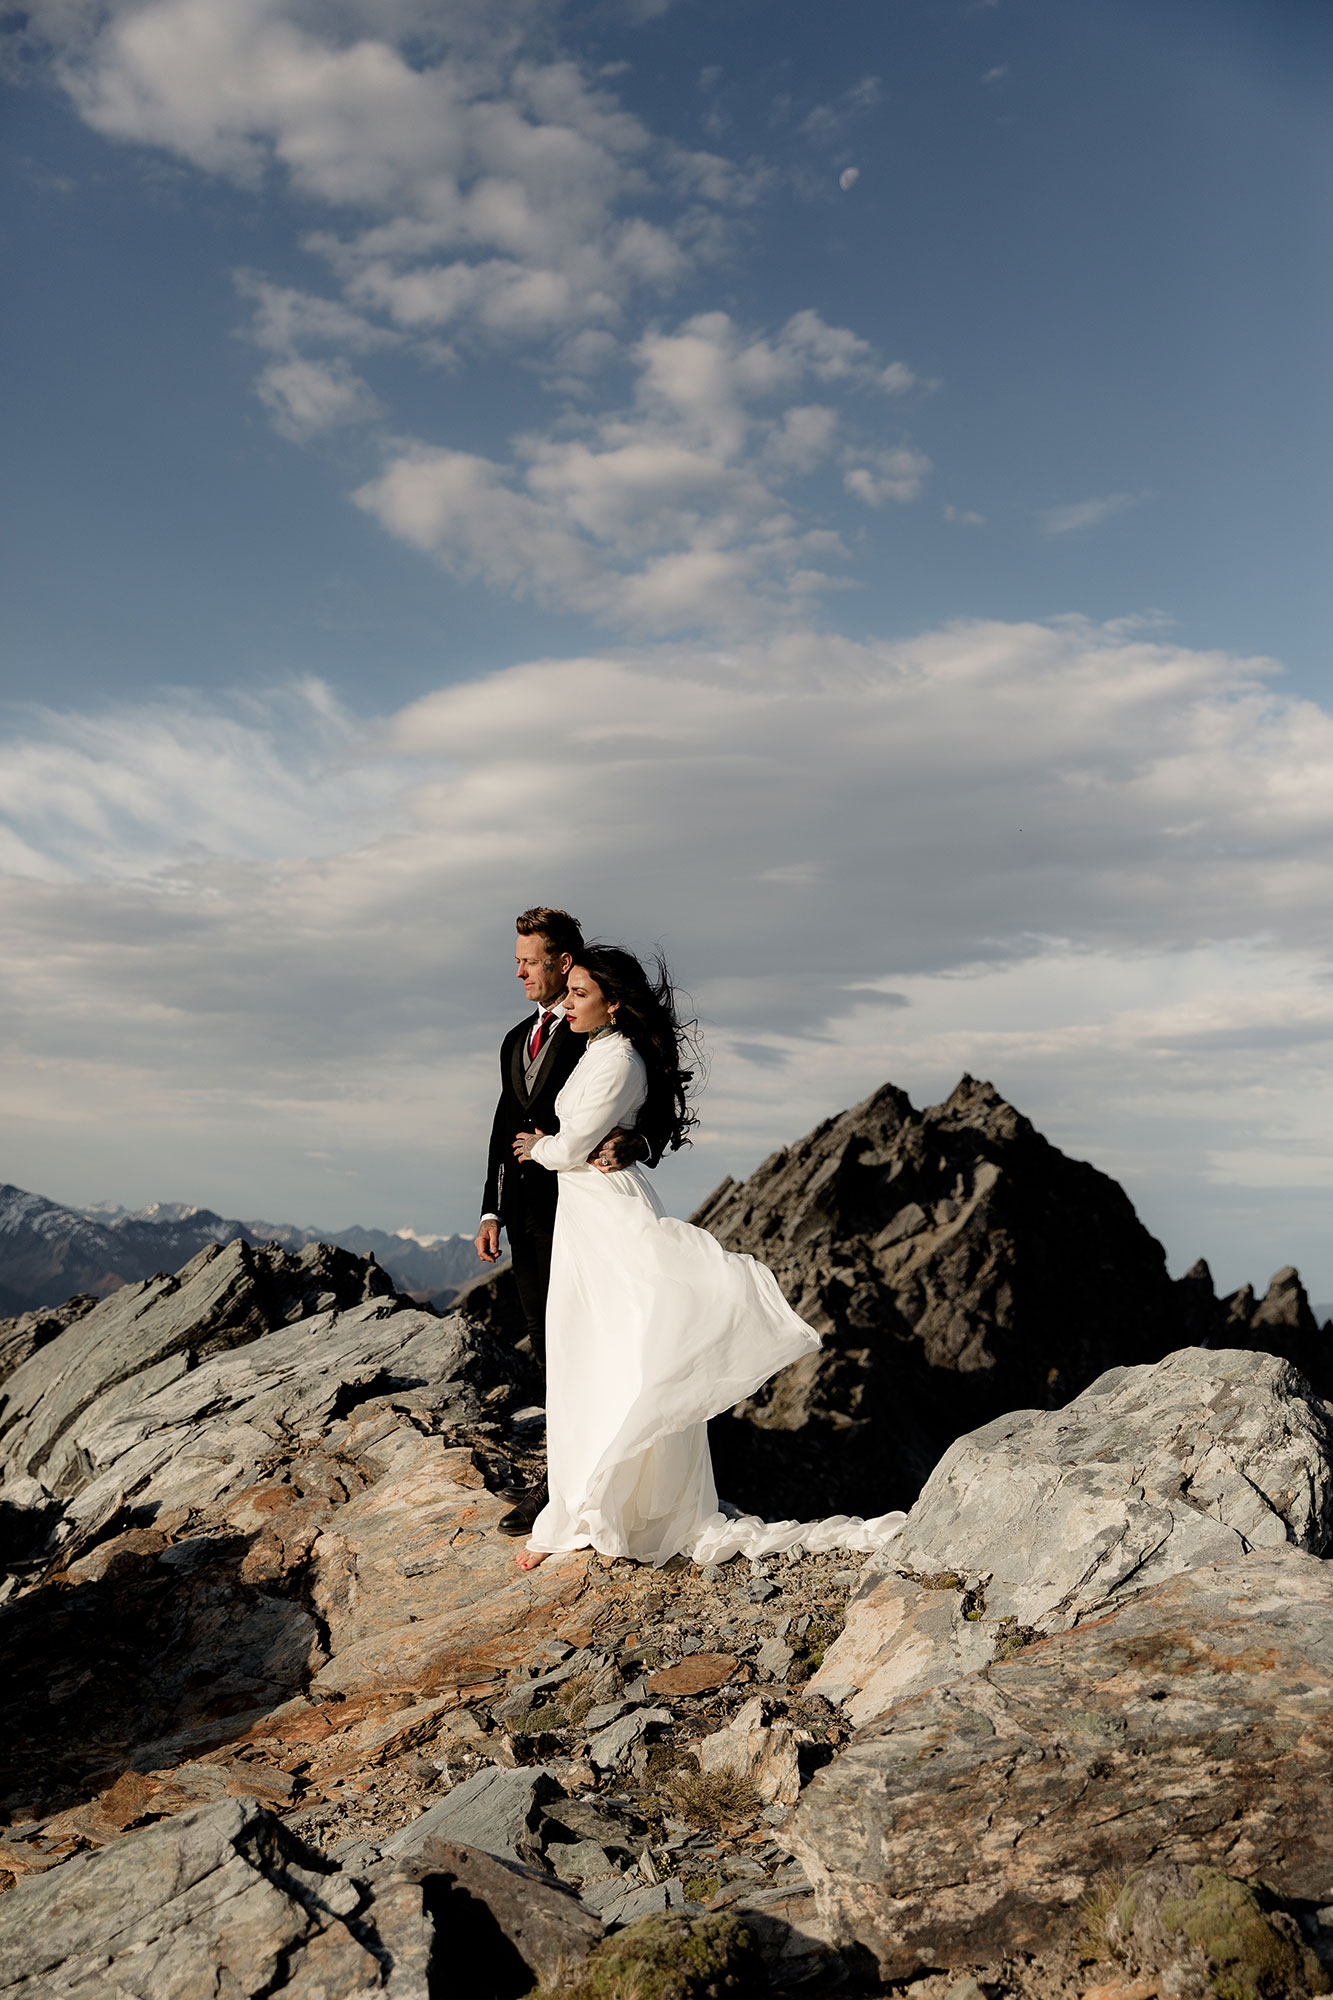 Wildly Romantic Mountain Elopement - Susan Miller Photography